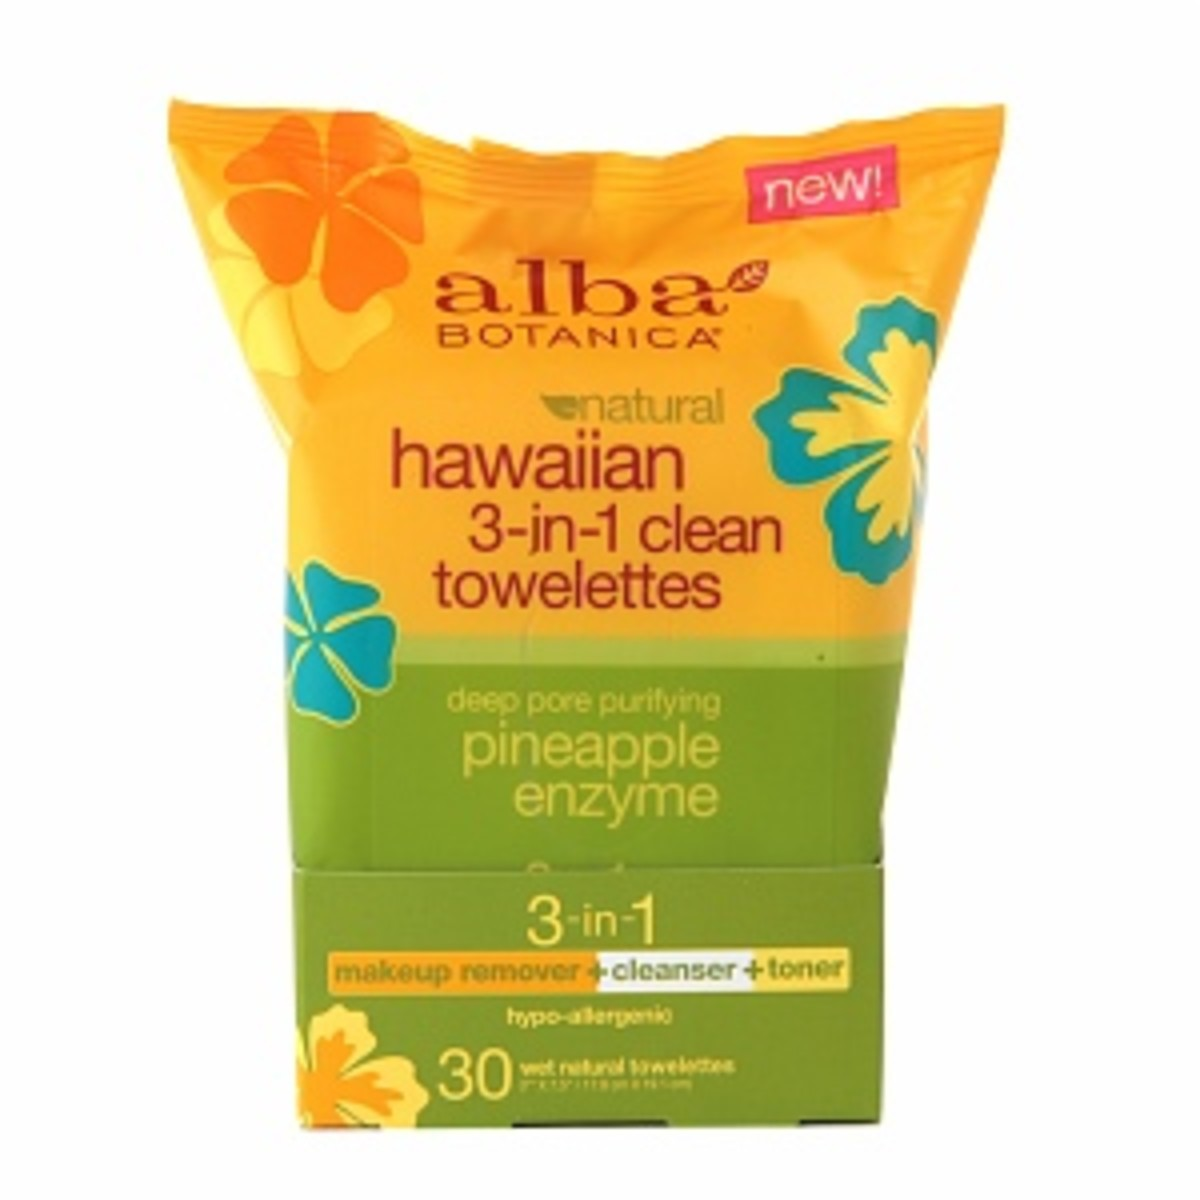 Alba Botanica Hawaiian 3-in-1 Clean Towelettes. I also have Pacifica's Purify Coconut Water Cleansing Wipes.